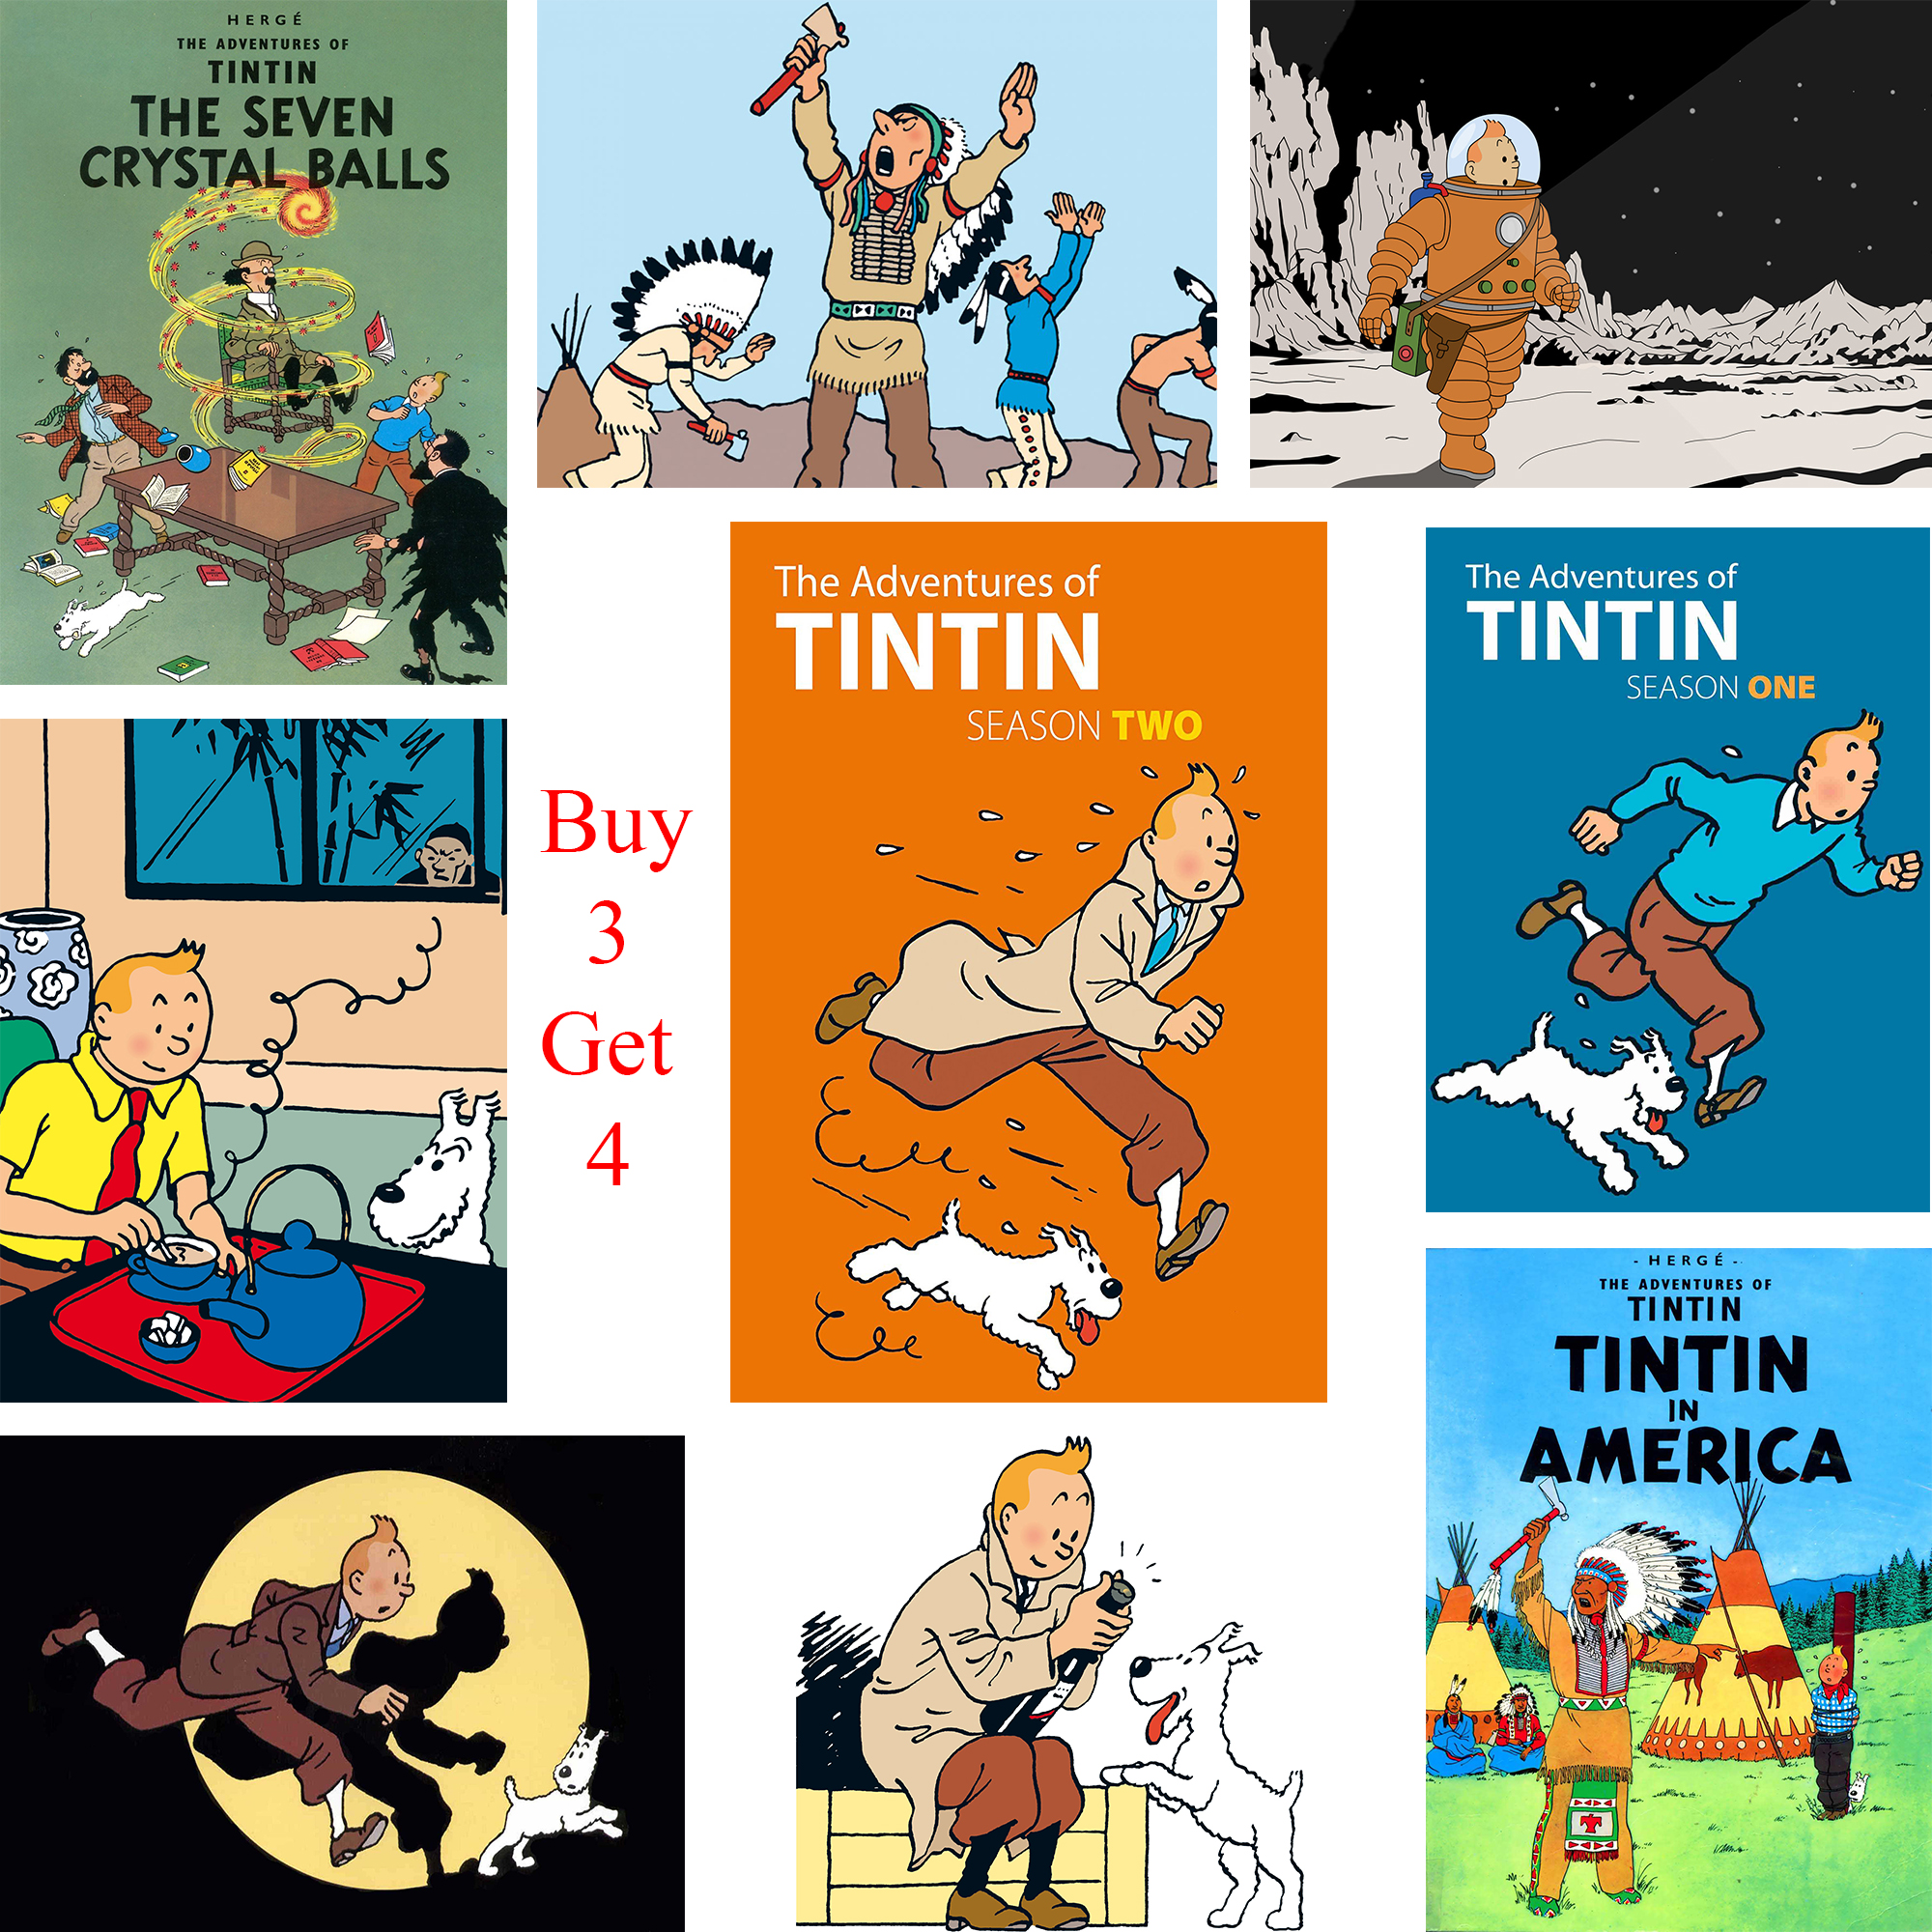 The Adventures of Tintin Posters Cartoon Wall Stickers White Coated Paper Prints Clear Image Home Decoration Bedroom Bar